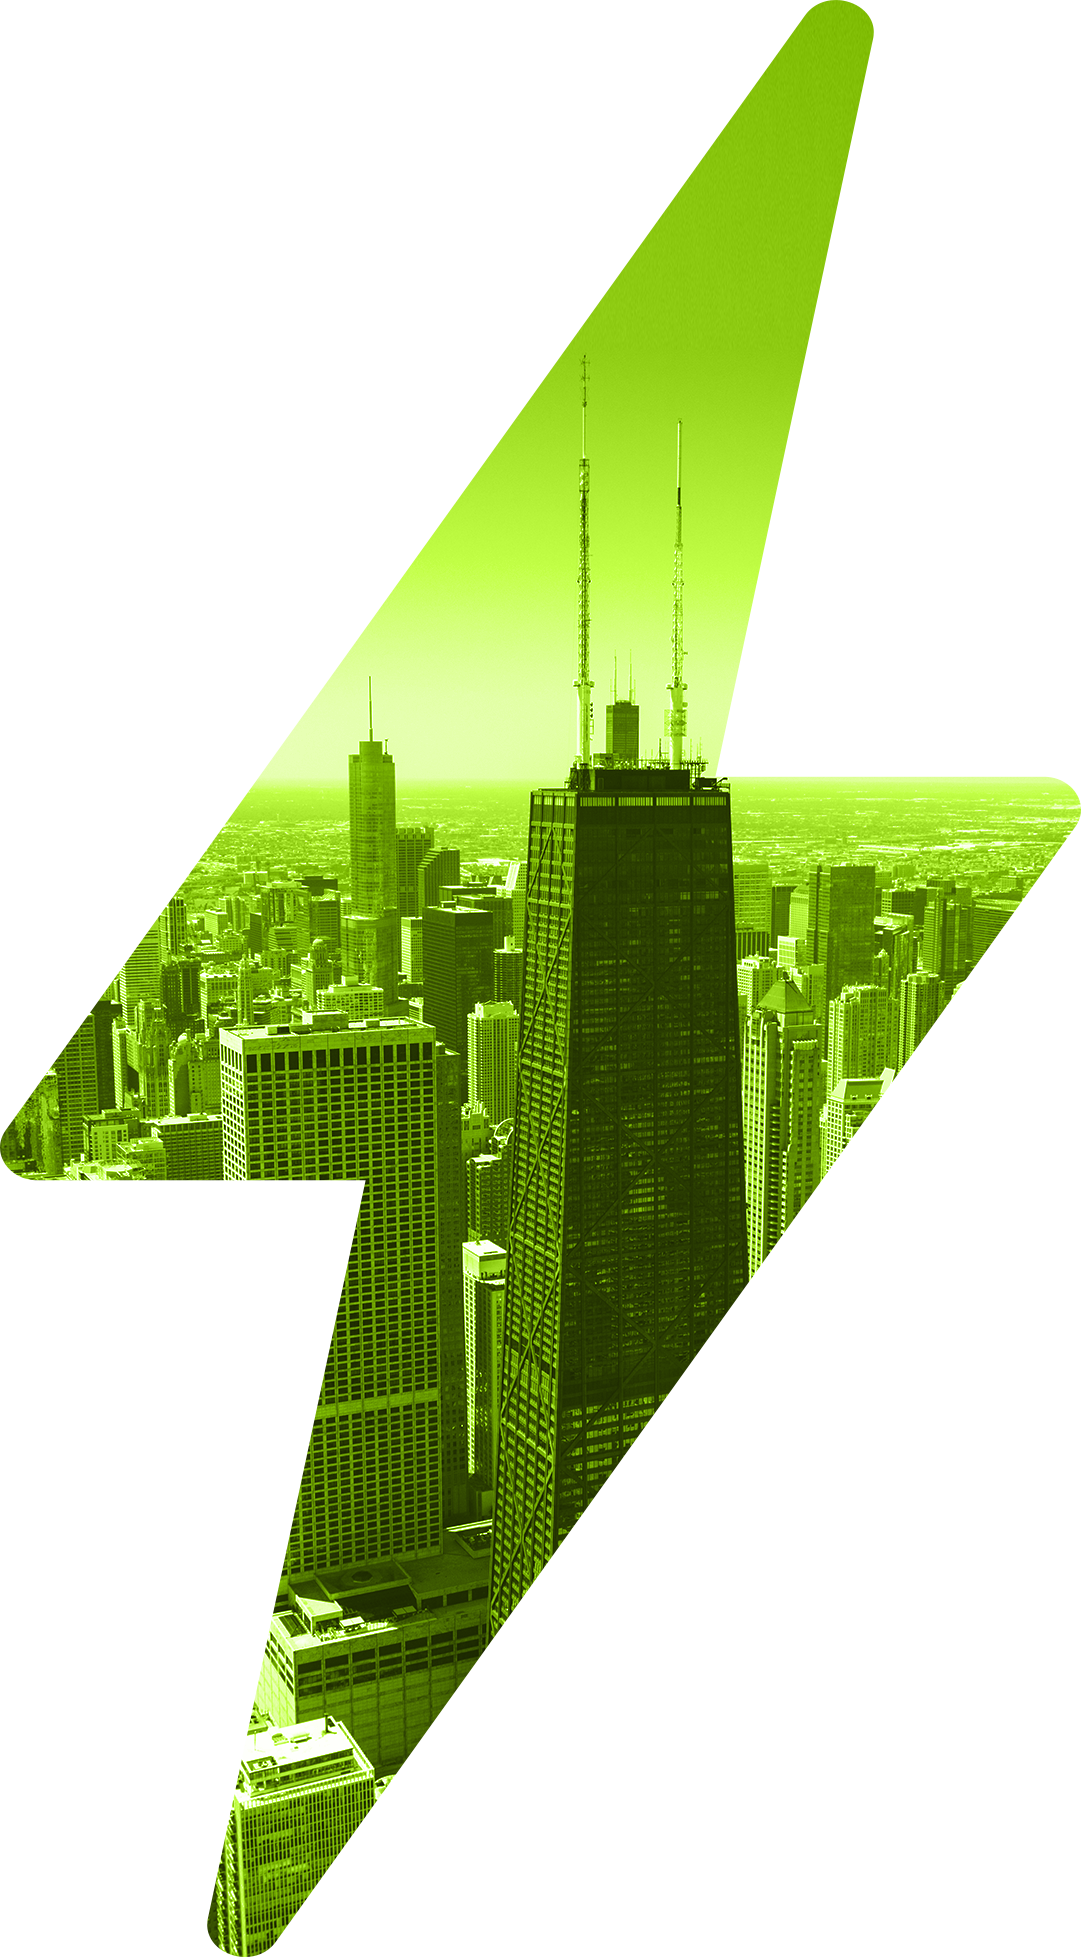 Large green lightning bolt with inset of Willis Tower skyscraper and financial buildings in Chicago, Illinois